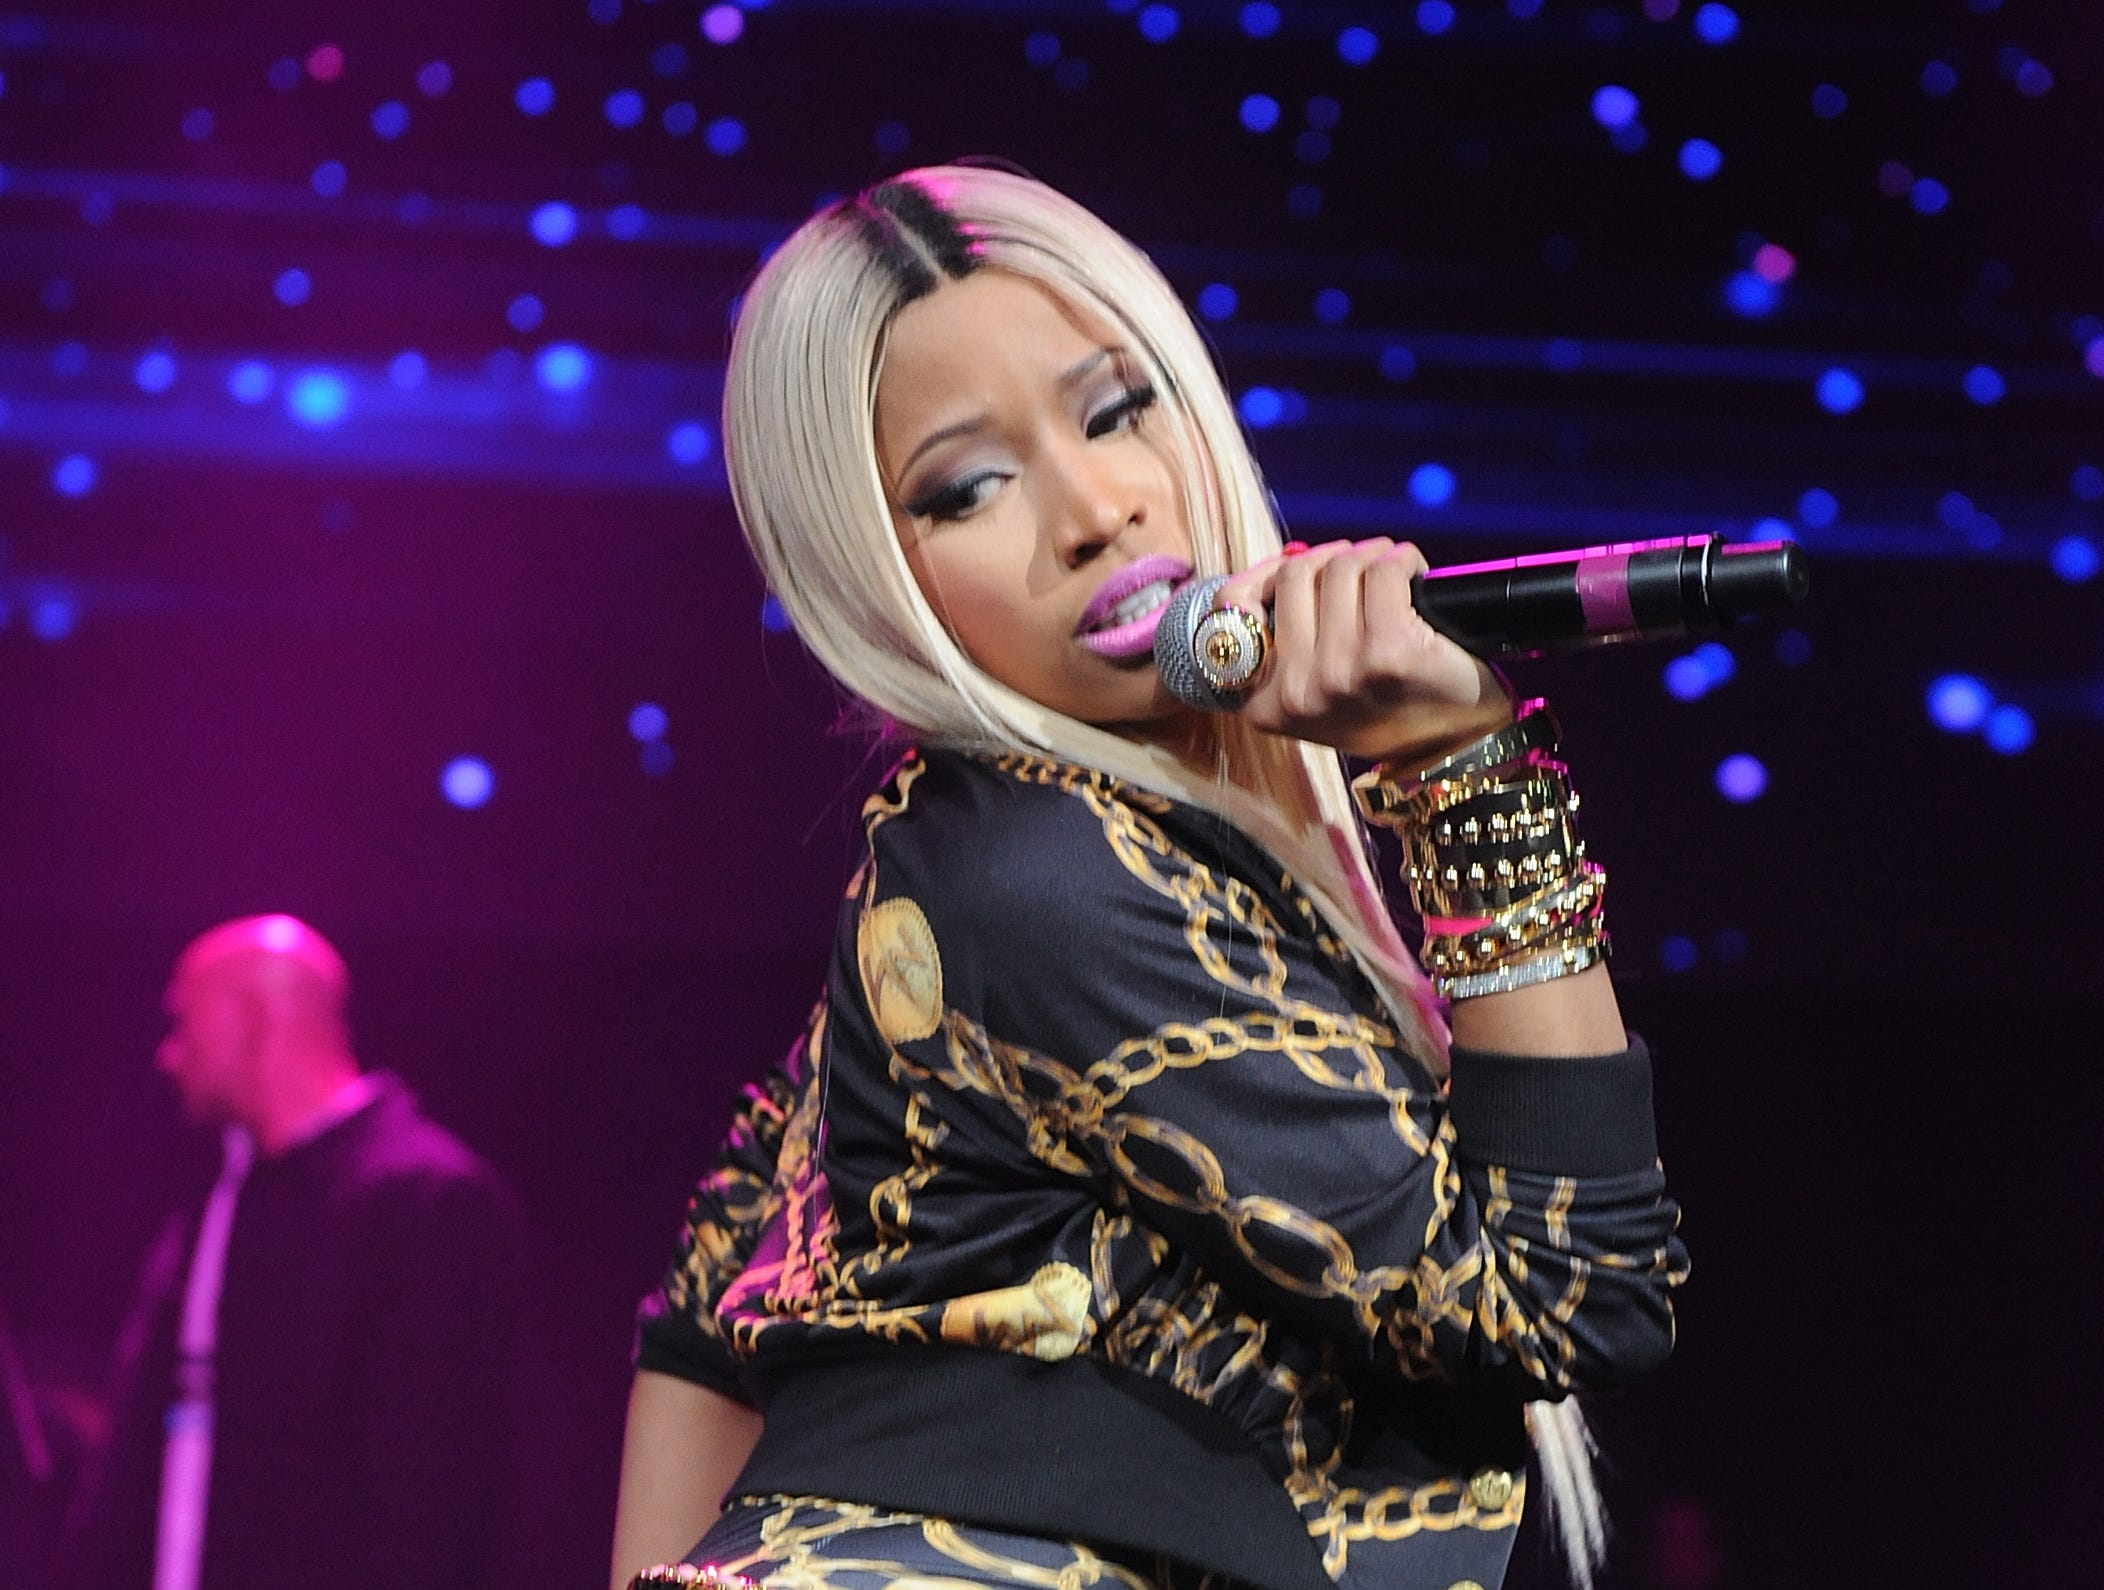 Hip-hop artist Nicki Minaj performs onstage at the Power 105.1's Powerhouse Concert at the Barclays Center, Saturday, Nov. 2, 2013, in New York's borough of Brooklyn. (Photo by Brad Barket/Invision/AP) ORG XMIT: NYBB105